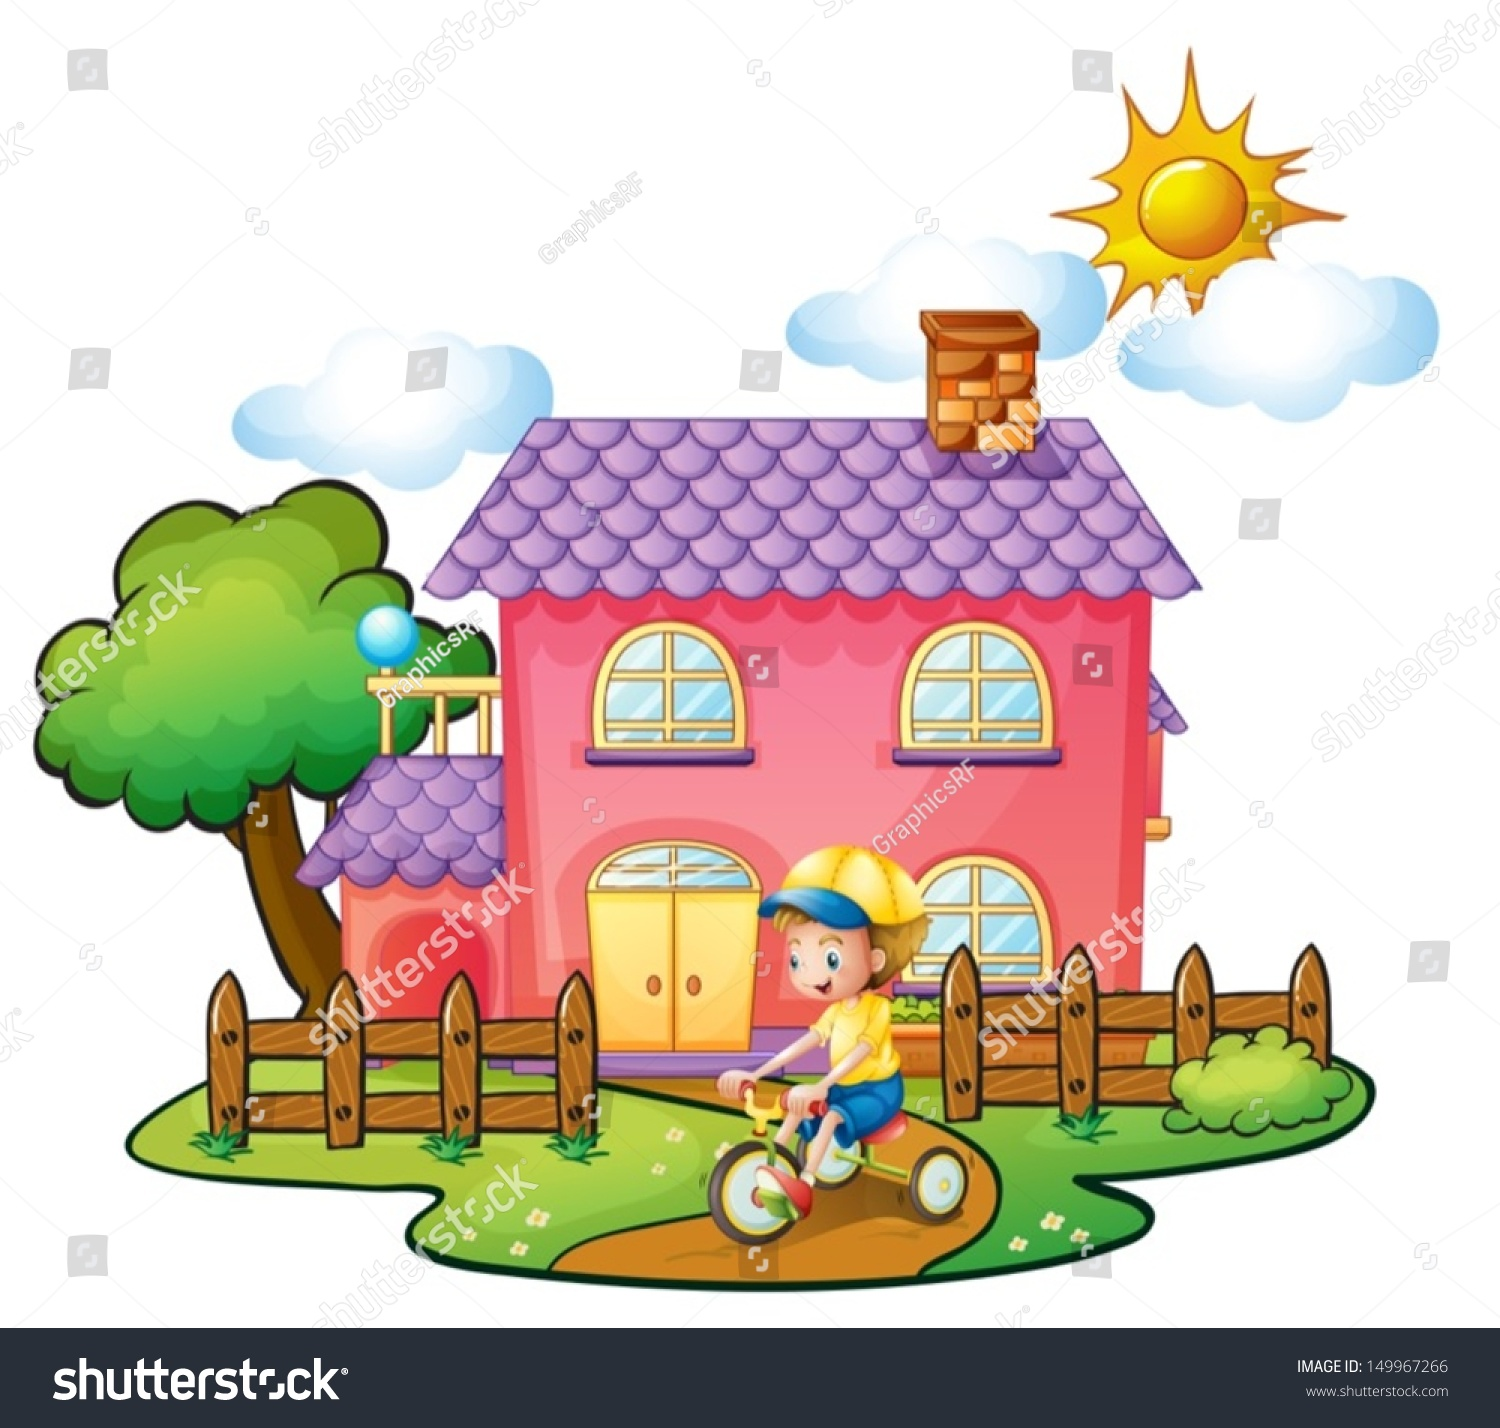 illustration of a little boy playing in front of their house on a